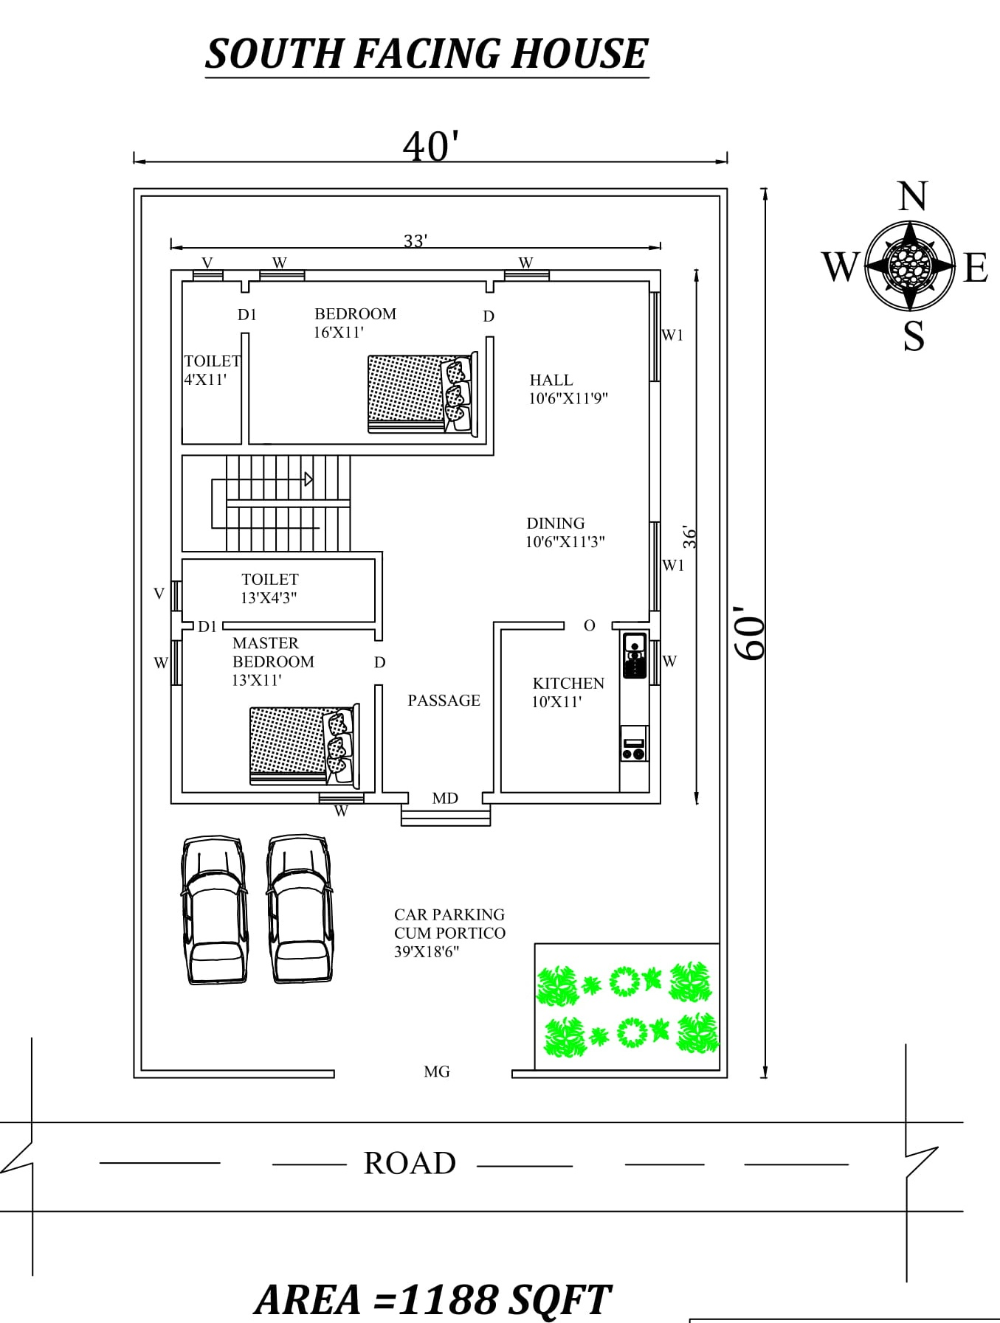 33 X36 2bhk Awesome South facing House Plan As Per Vastu Shastra Autocad DWG and Pdf file details Autocad DWG and Pdf file details